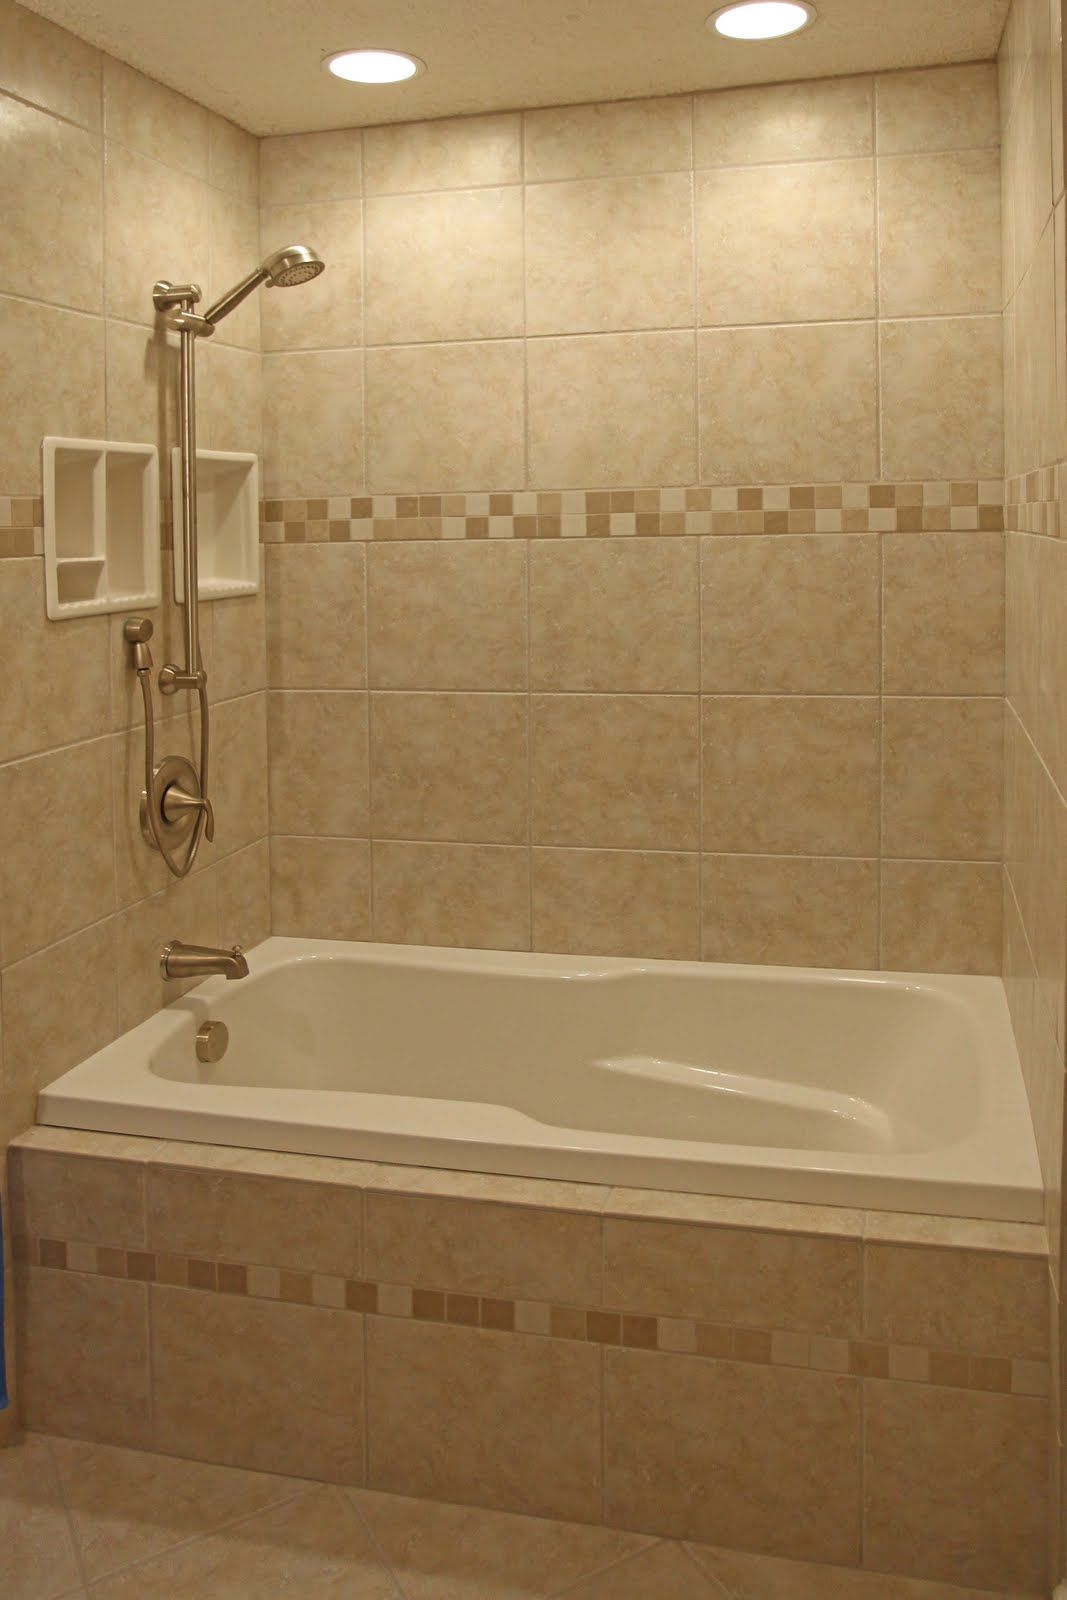 Bathroom Remodel Tile Ideas shower and bath remodel | bathroom shower design ideas » ceramic